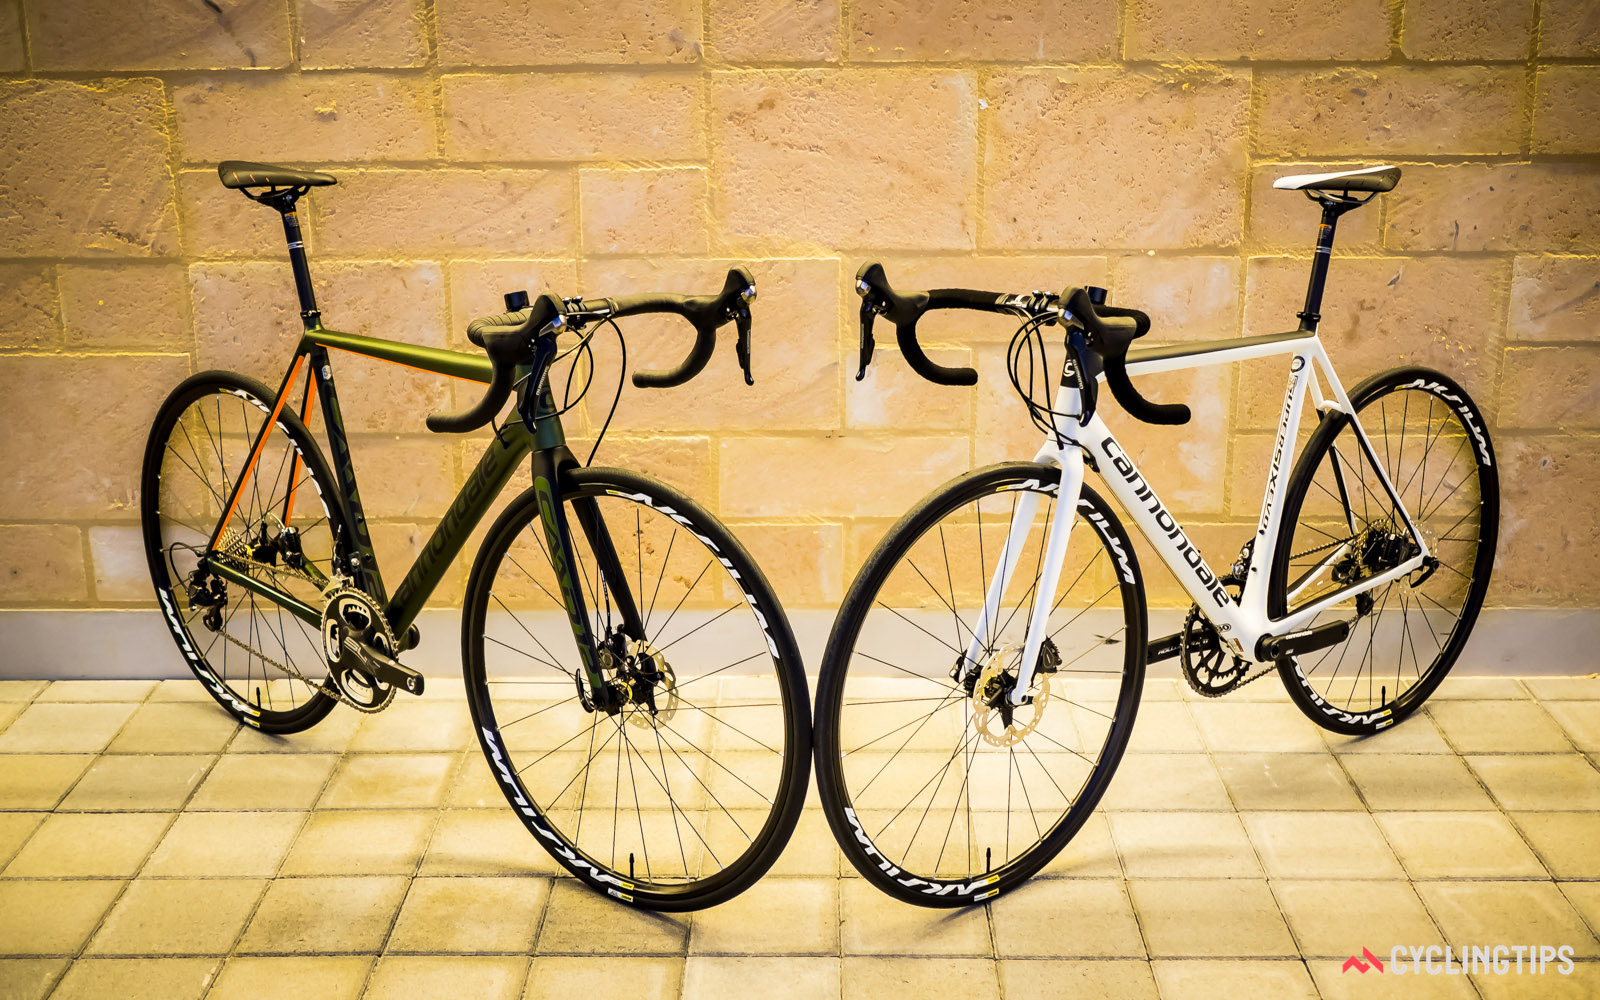 ride quality depends on more than simply the choice of frame material